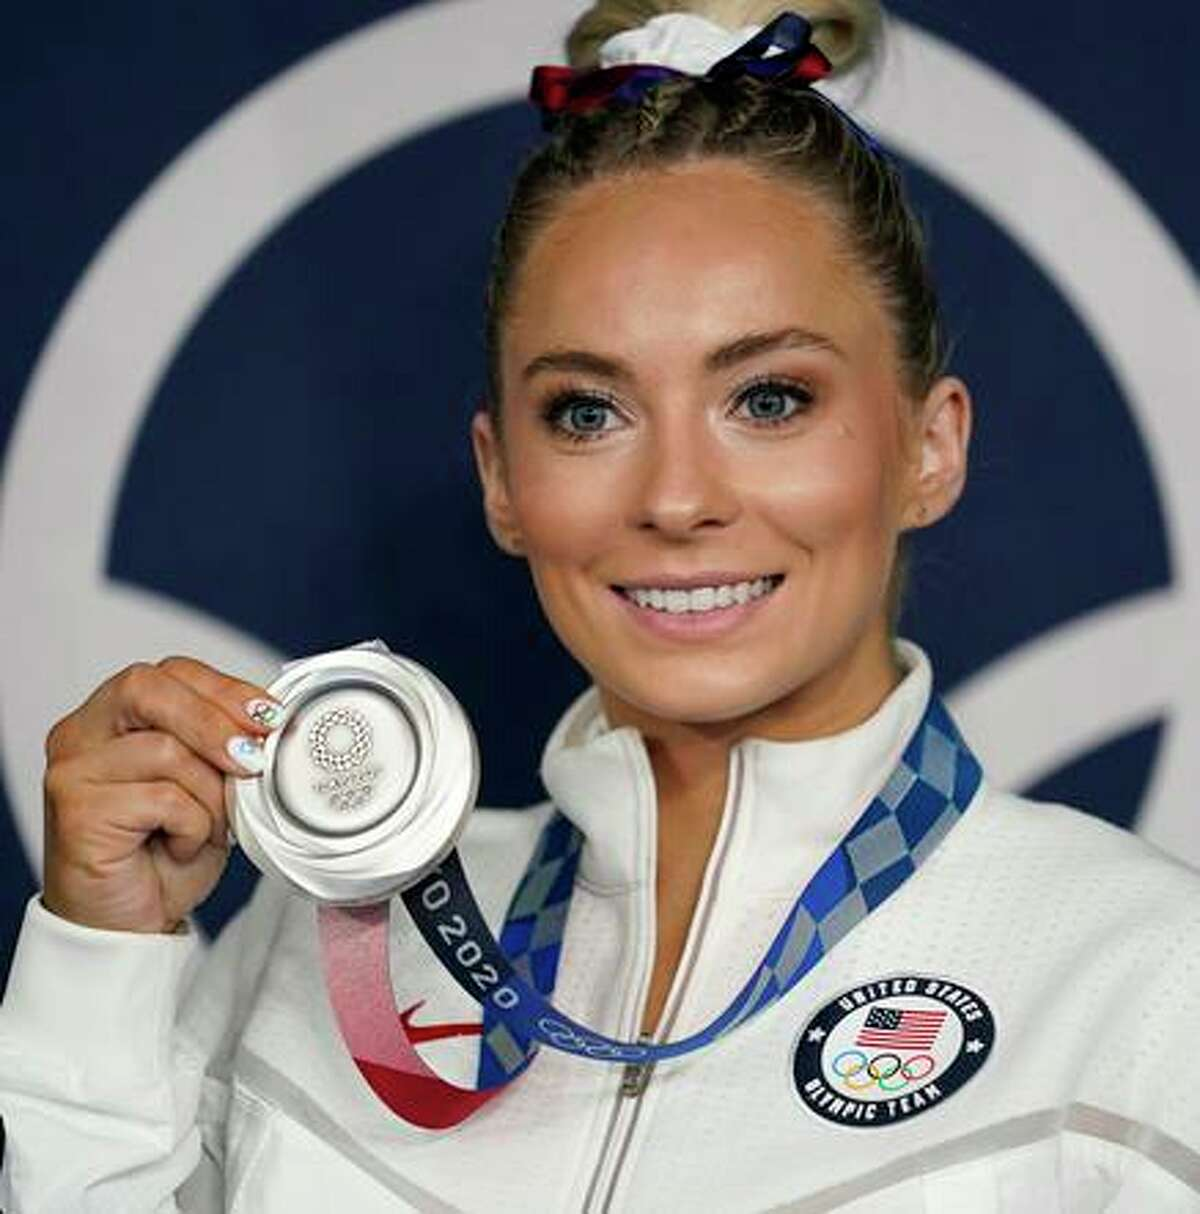 Mykayla Skinner, of United States, poses for a photo with her silver medal for vault after the artistic gymnastics apparatus finals at the 2020 Summer Olympics, Sunday, Aug. 1, 2021, in Tokyo, Japan. (AP Photo/Ashley Landis)